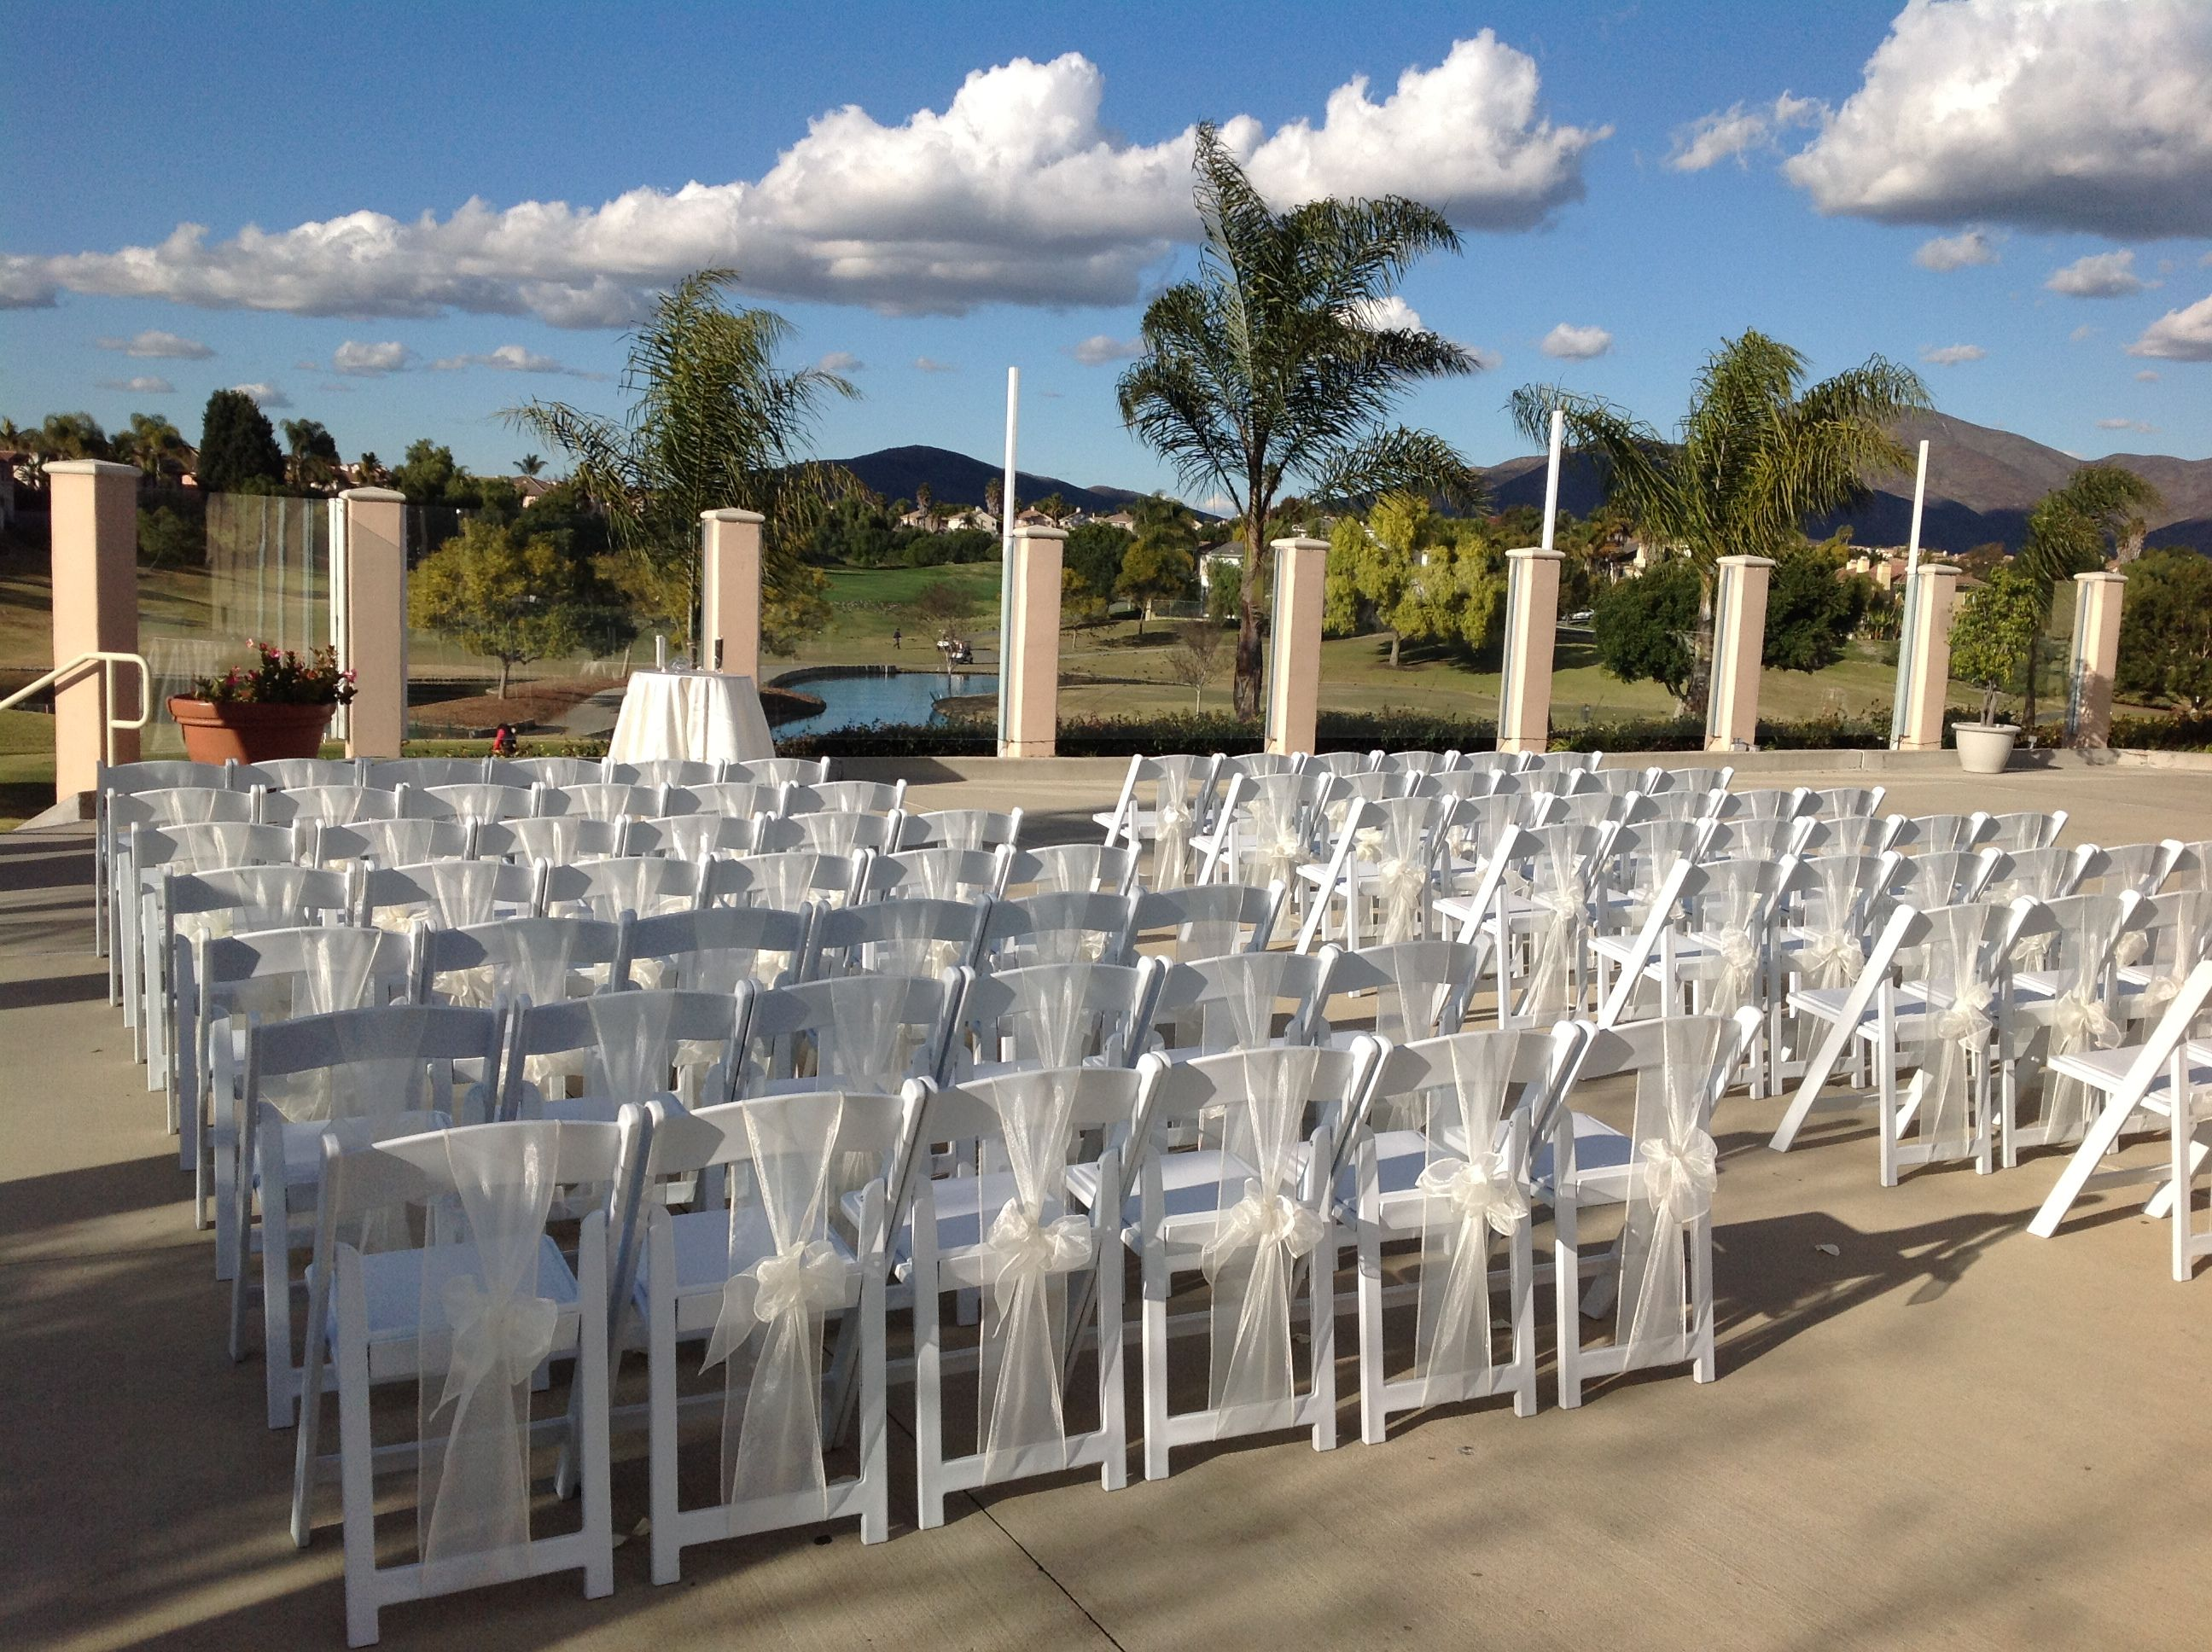 Ceremony Set Up Of White Resin Folding Chairs With A Padded Seat And An Ivory Sash Tied In A Bow To Give A Clas Wedding Chairs Wedding Decorations Chair Sashes